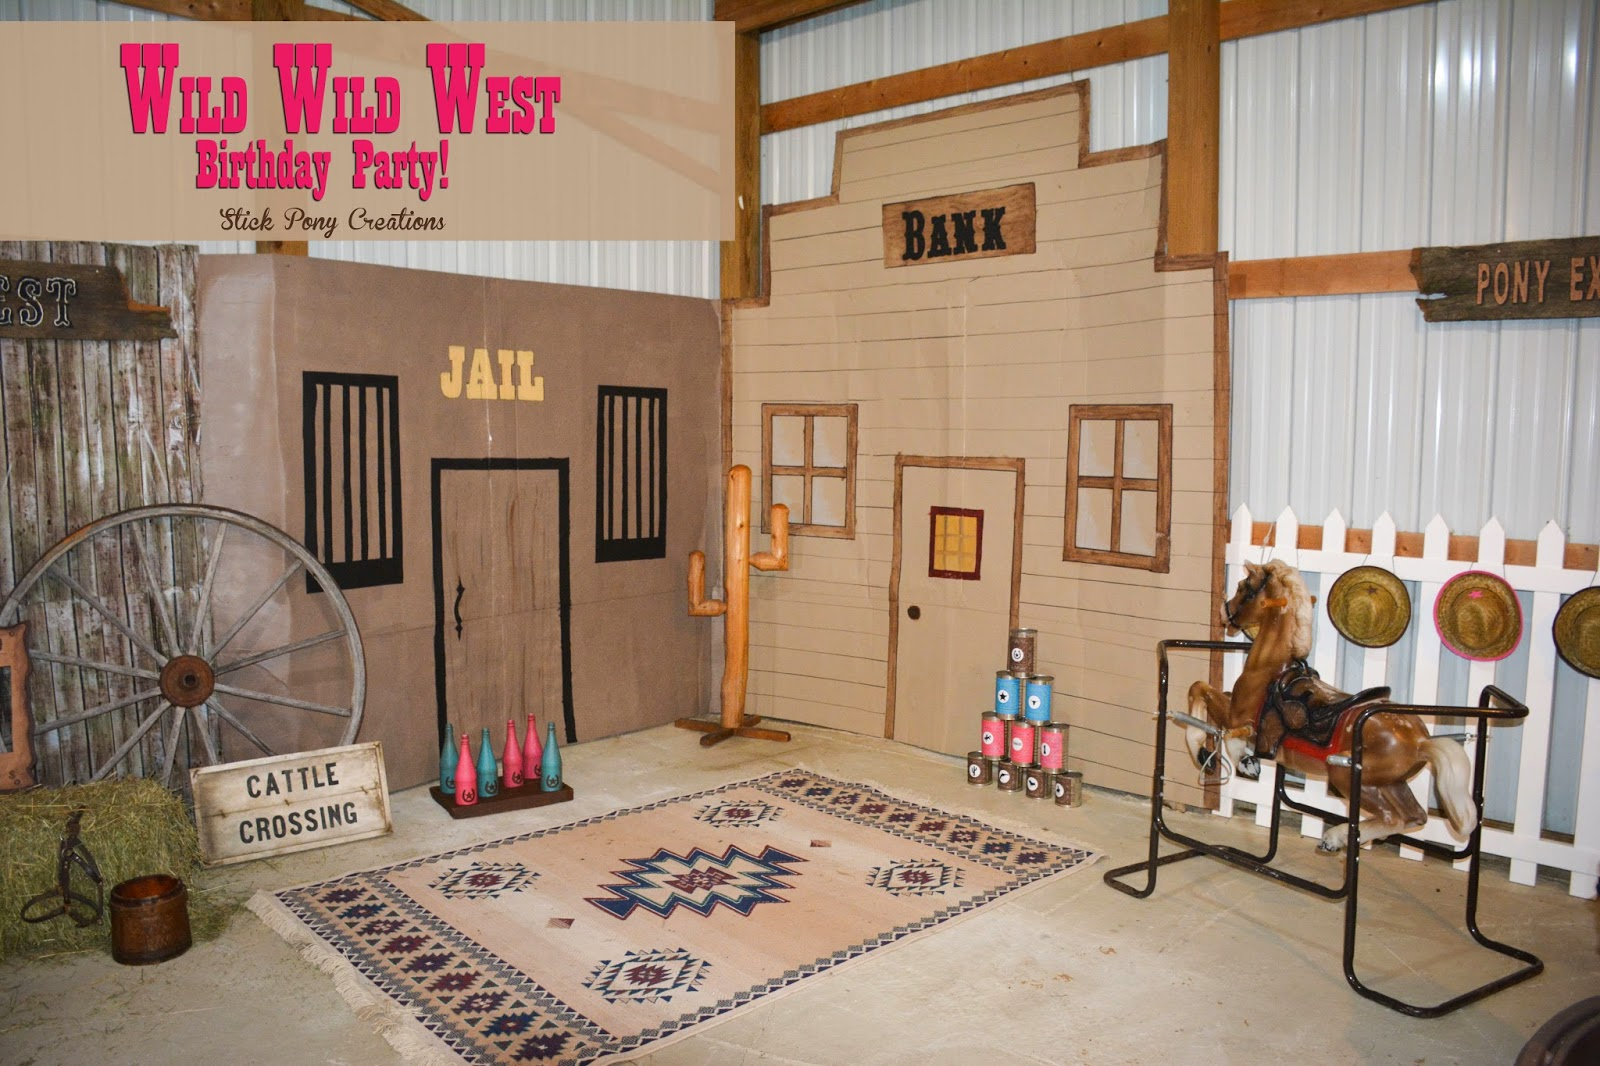 Stick Pony Creations: Wild Wild West Party - Our Cowgirl's 1st Birthday!